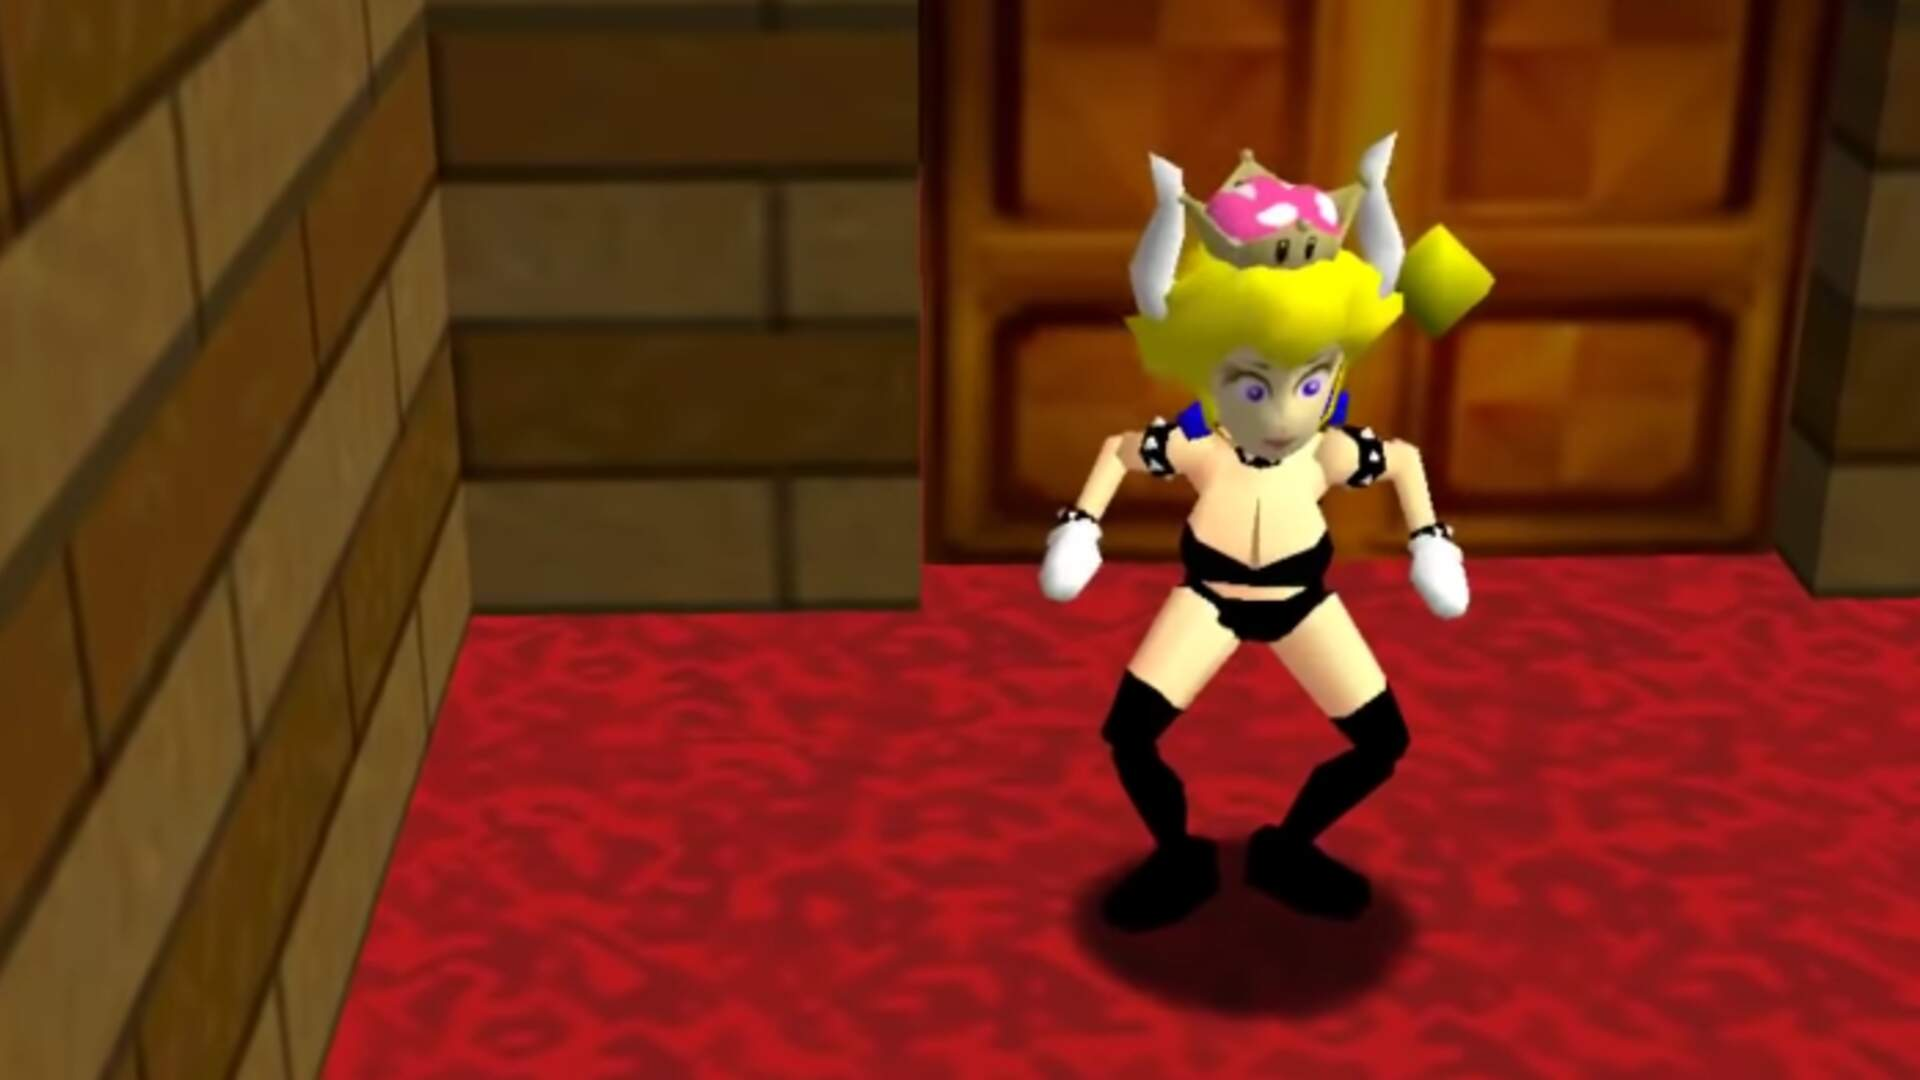 Bowsette is Now a Playable Character in a Nintendo Game